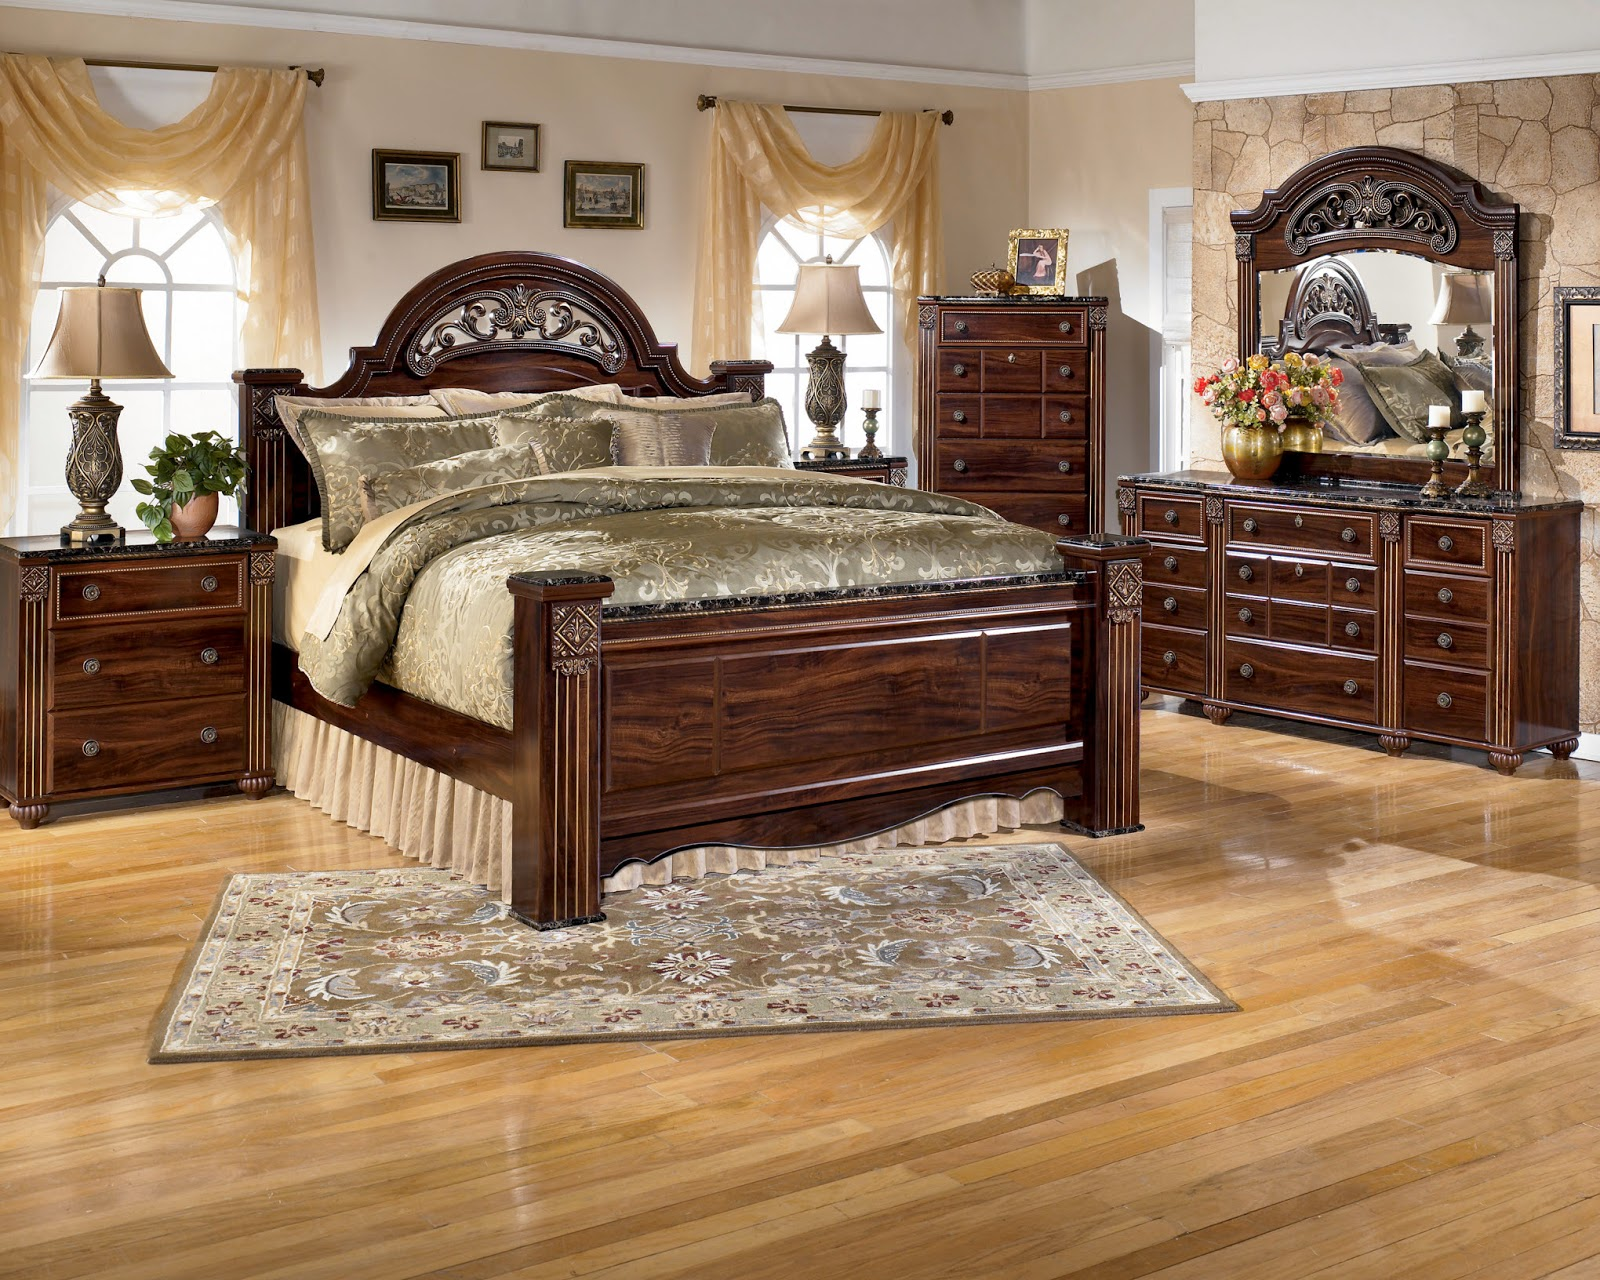 Ashley furniture bedroom sets on sale popular interior for Bedroom set with bed